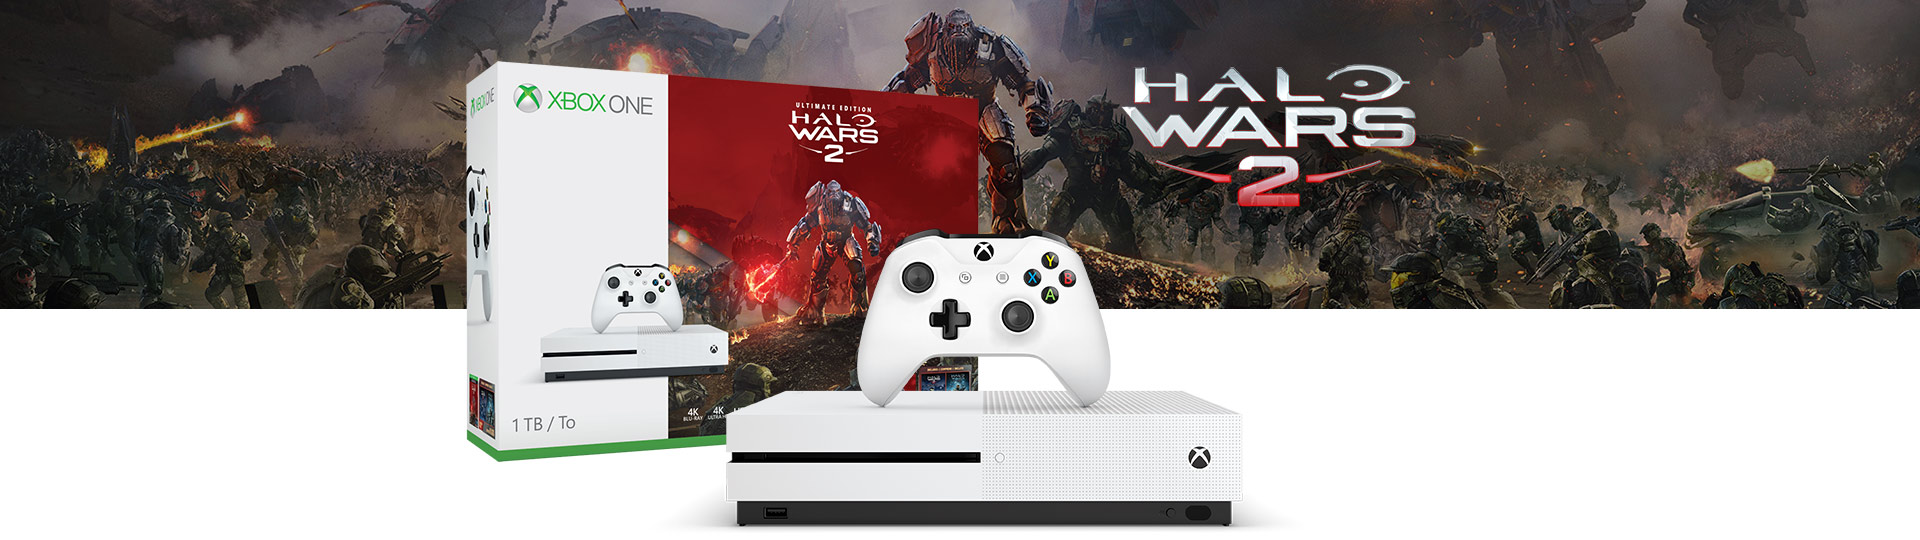 Xbox One S Halo Wars 2 bundle